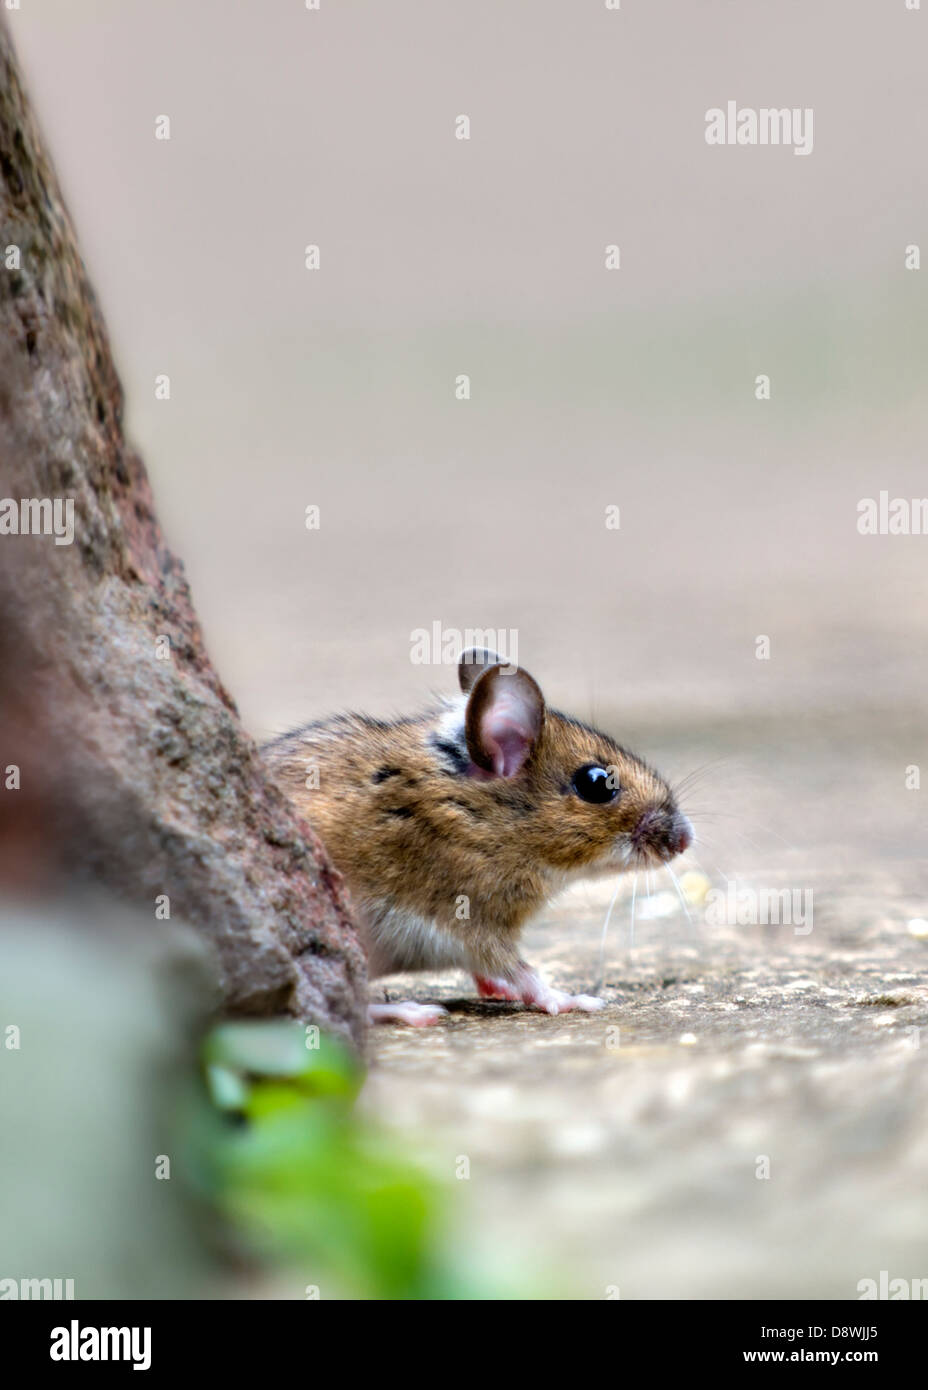 Wood mouse, also known as field or long-tailed mouse cautiously coming out from under rock pile to feed - Stock Image